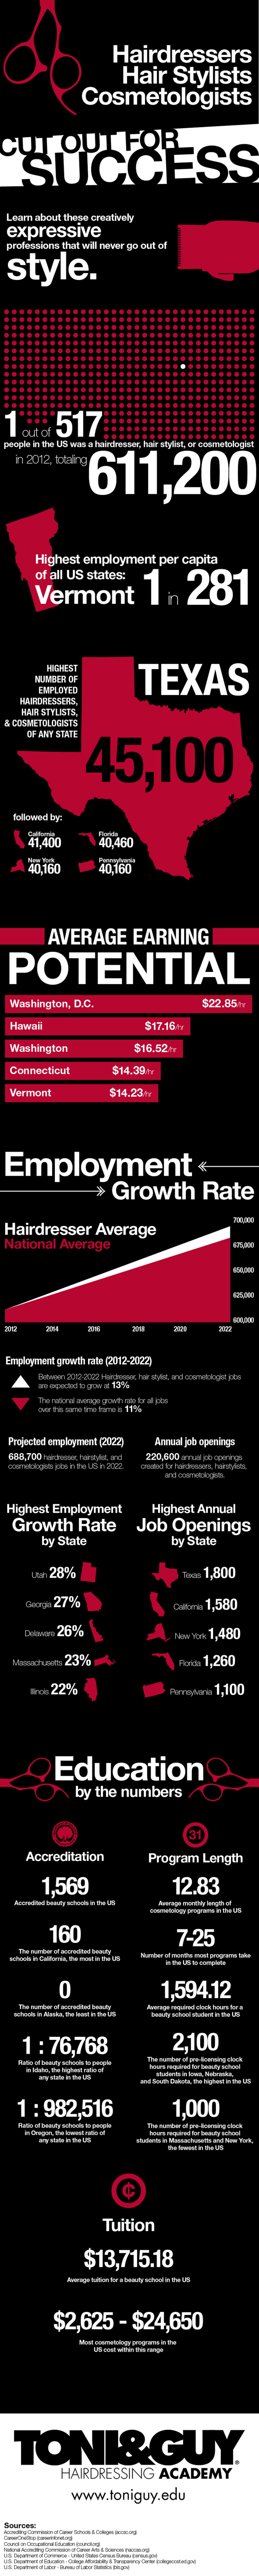 Hairdresser, Hair Stylist, & Cosmetologist Career Infographic